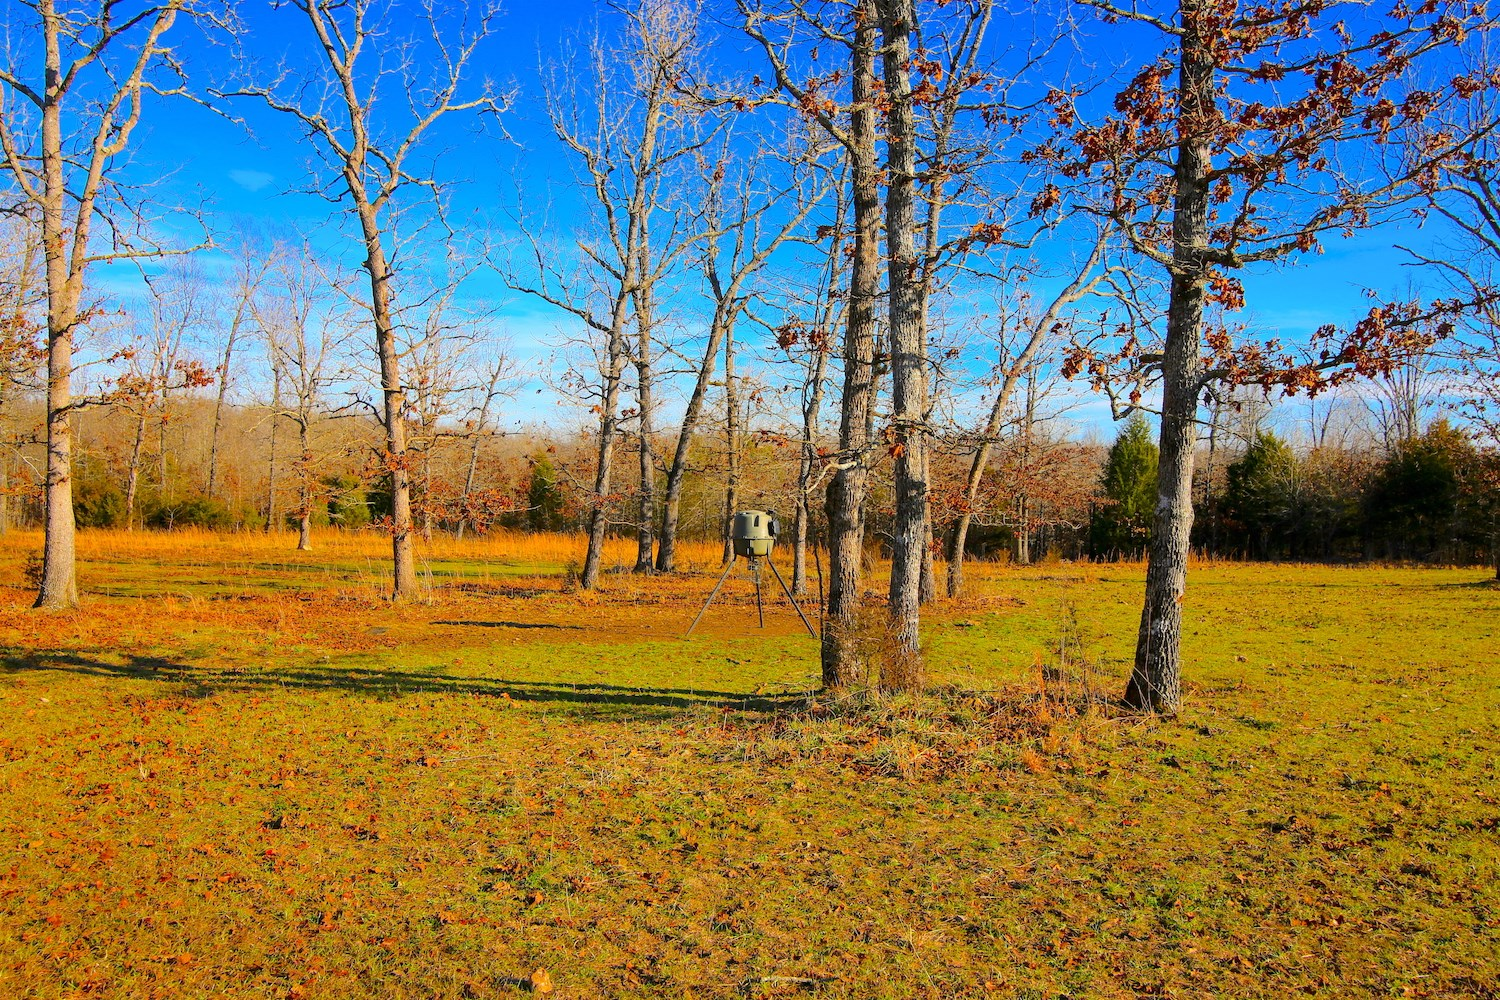 Hunting Property For Sale in Fulton County Arkansas